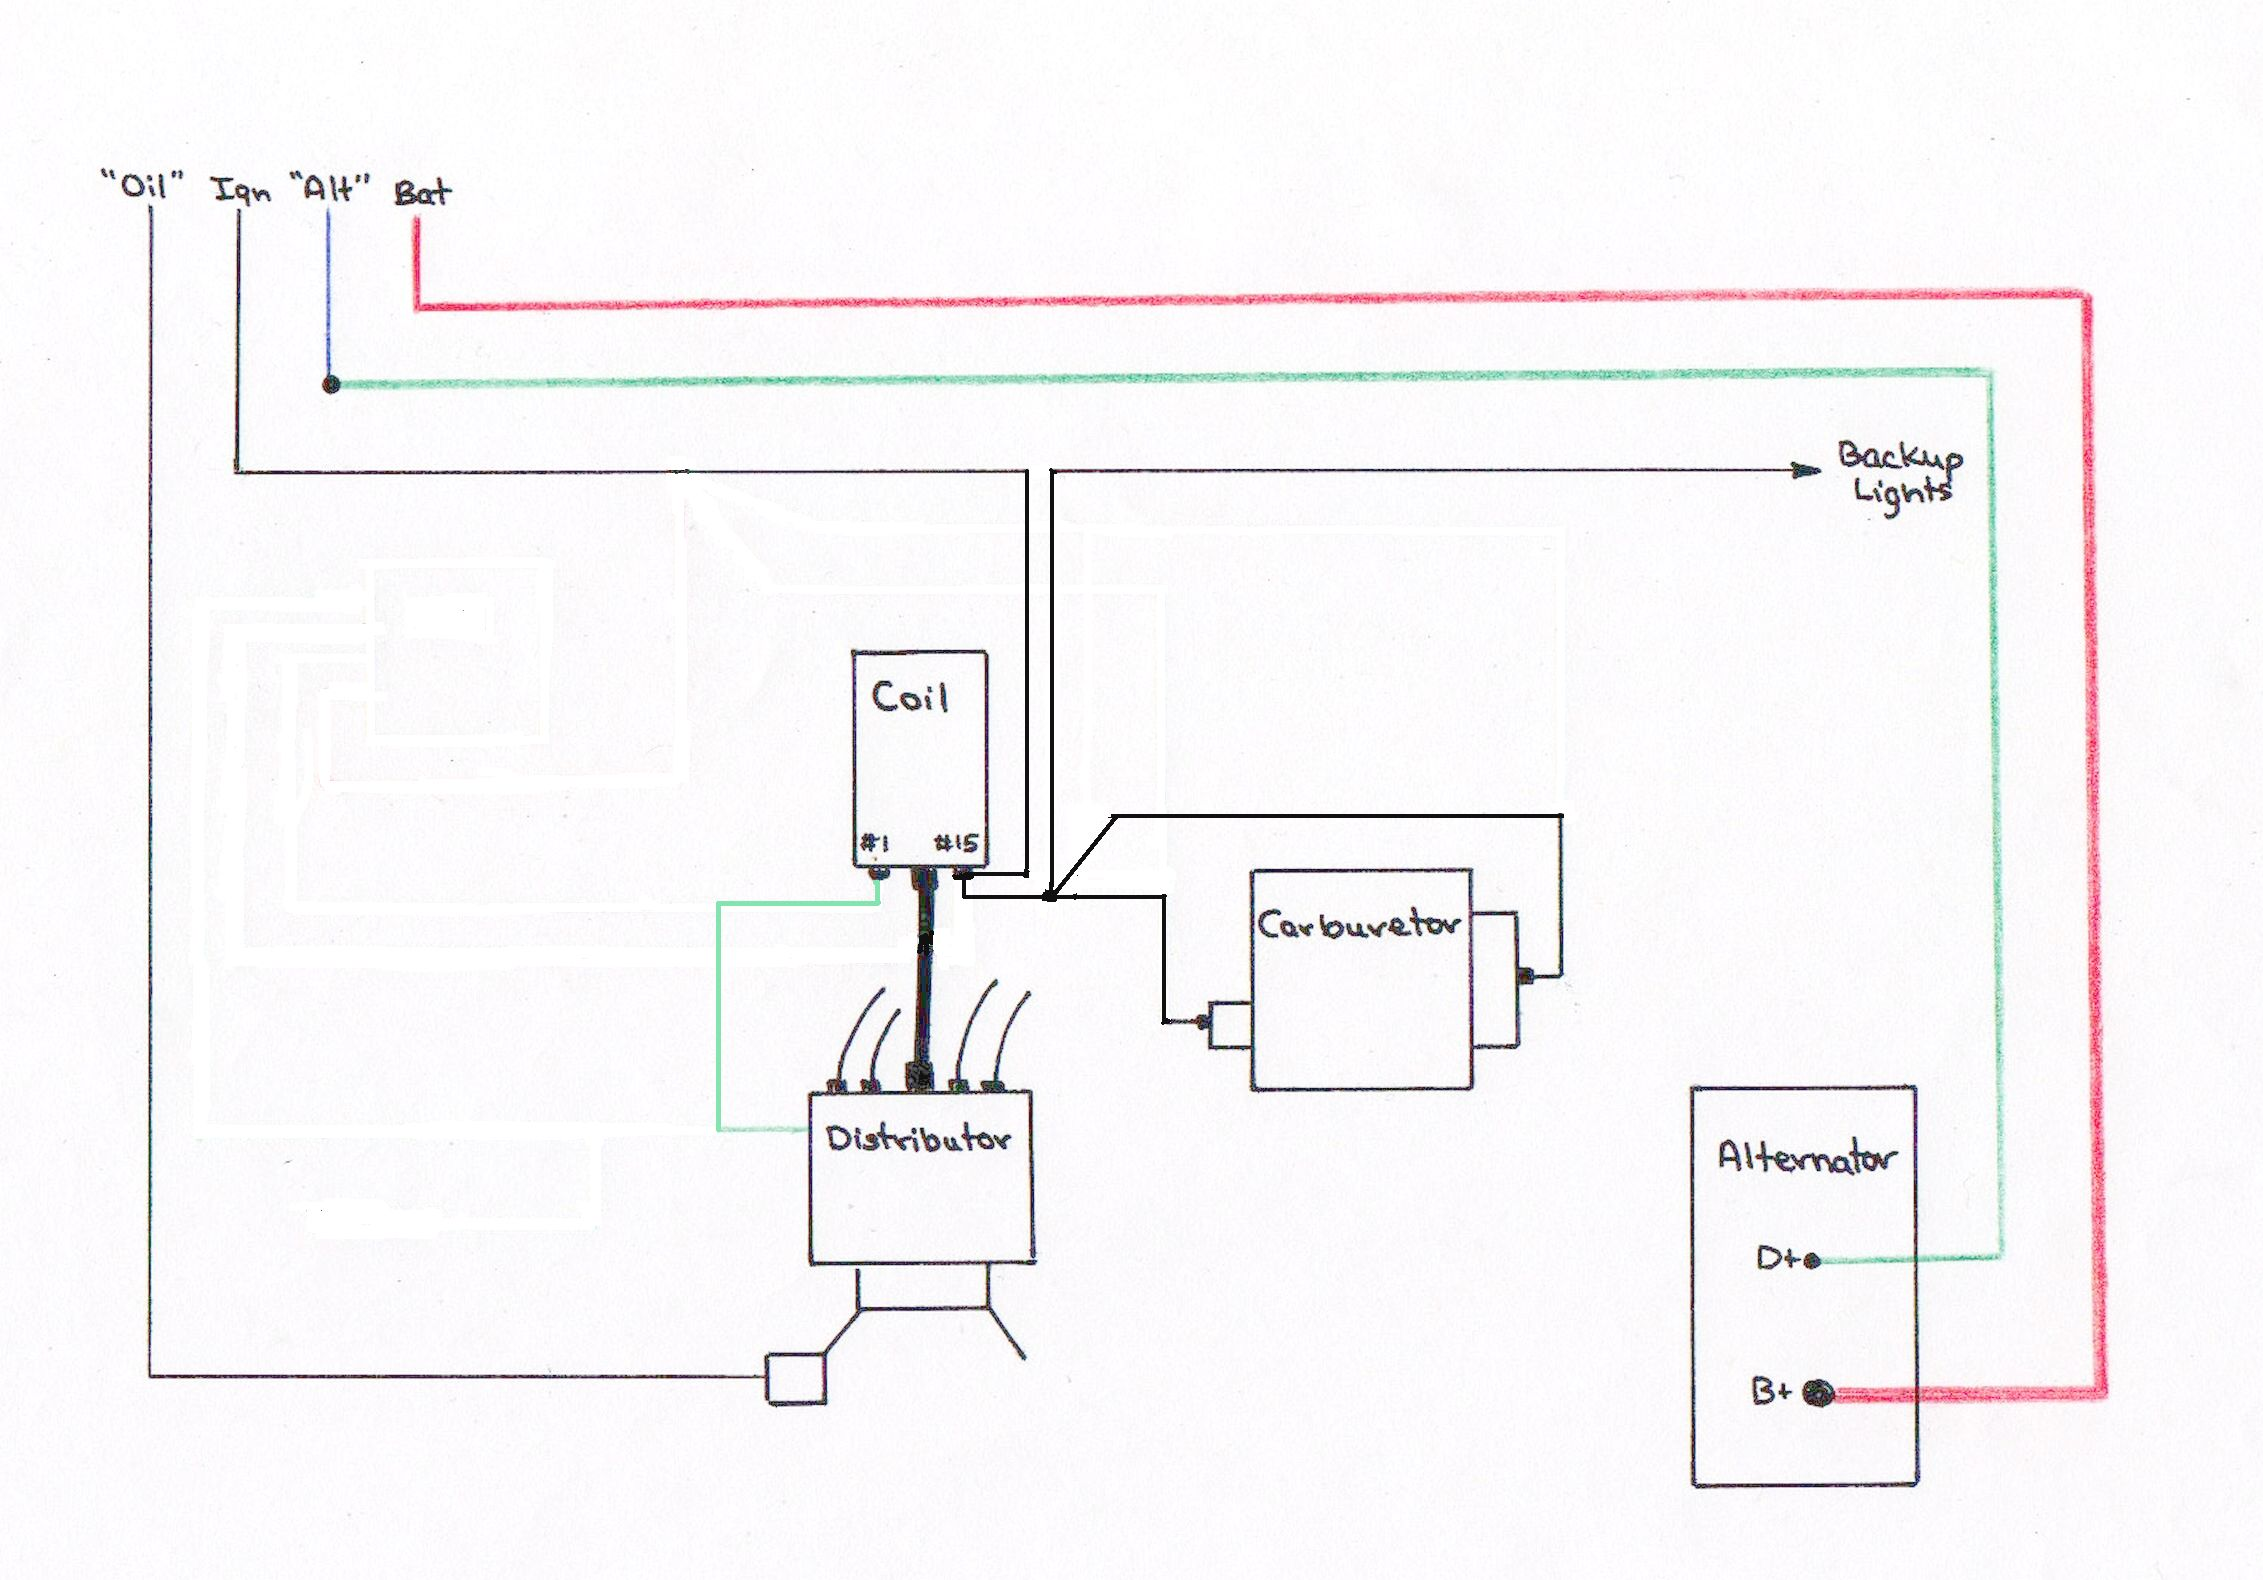 handdrawn_schematic alternator wiring wiring diagram for an alternator at honlapkeszites.co